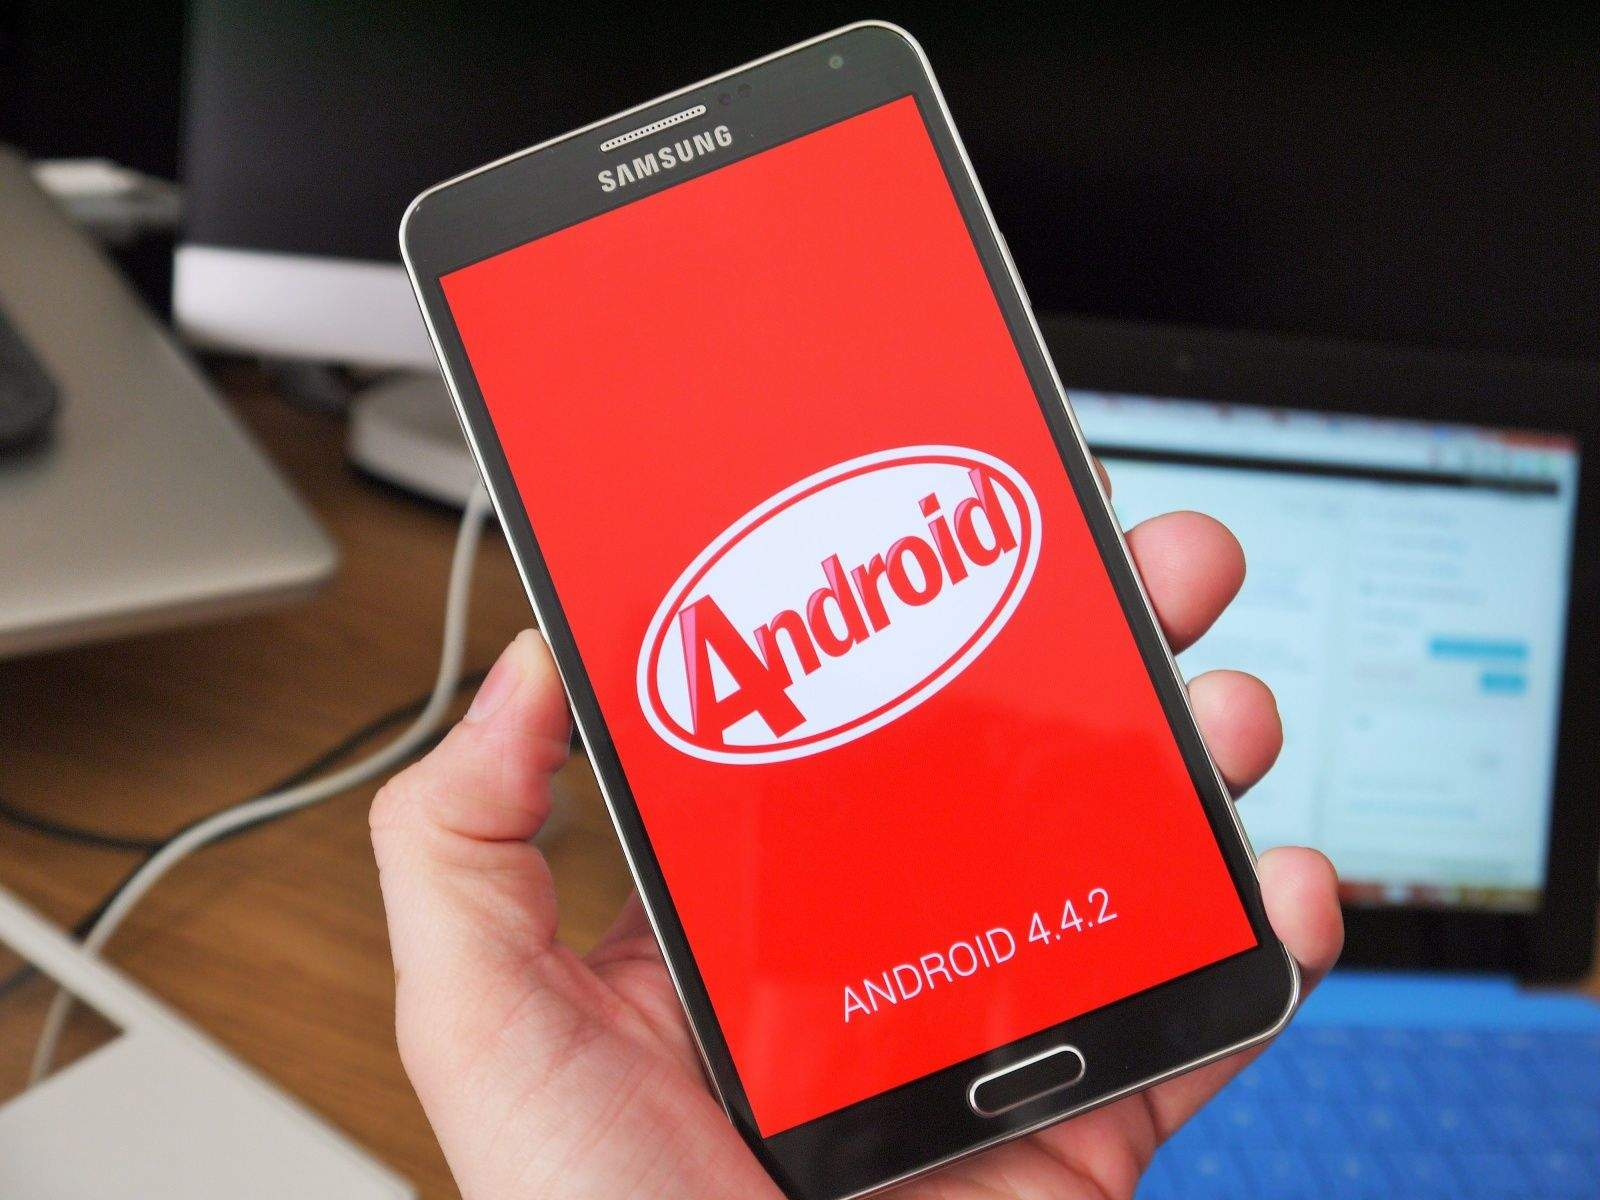 Cult of Android - Save Your Galaxy Note 3 From A Failed